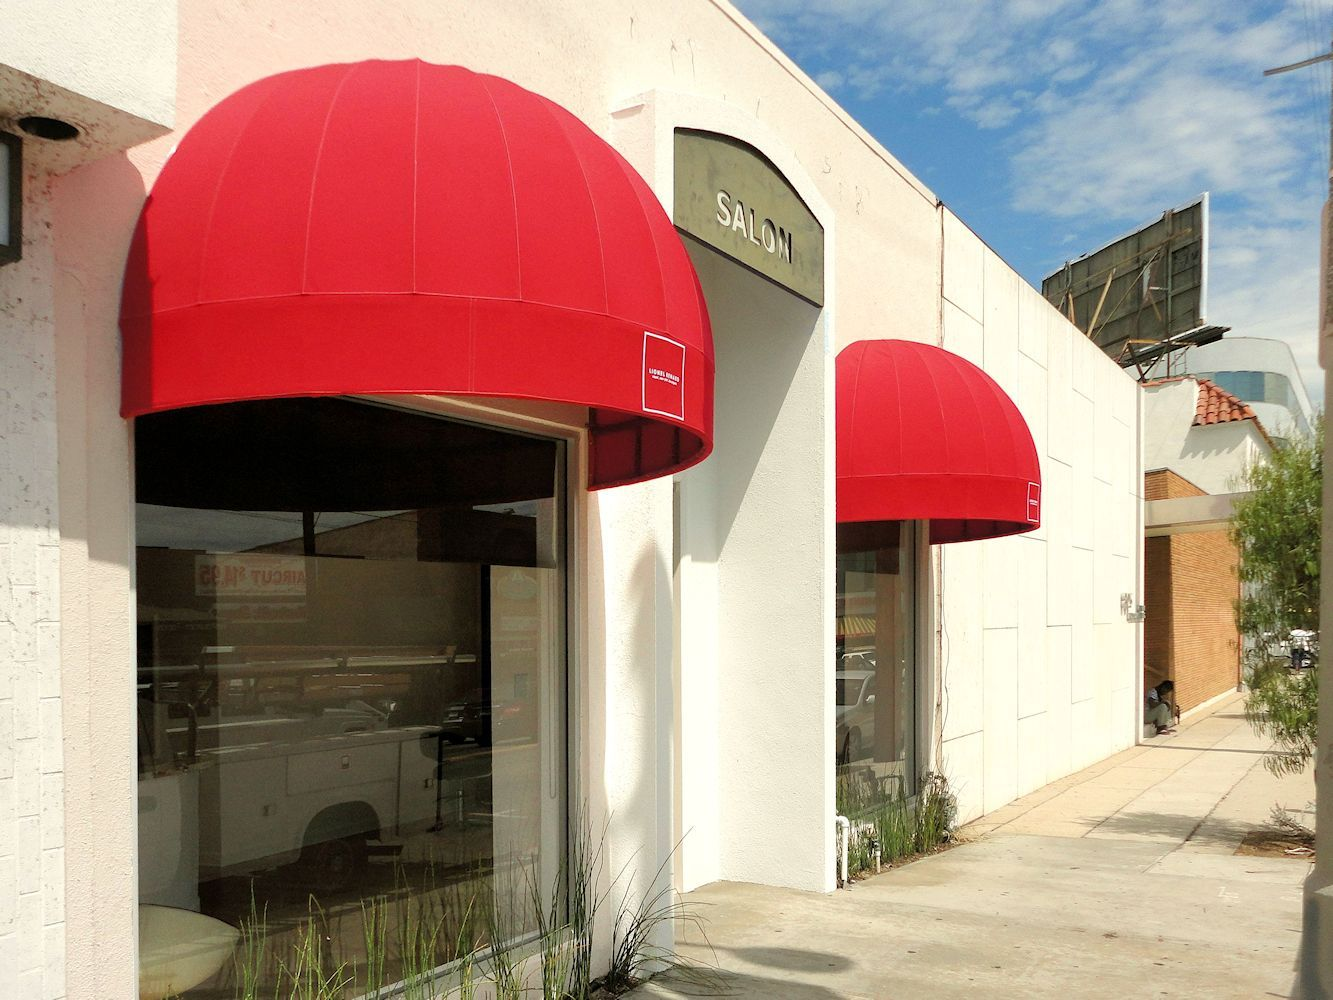 Attention Getting Bright Red Dome Awnings By Superior Awning In Southern California Superiorawning Com Custom Awnings Window Awnings Awning